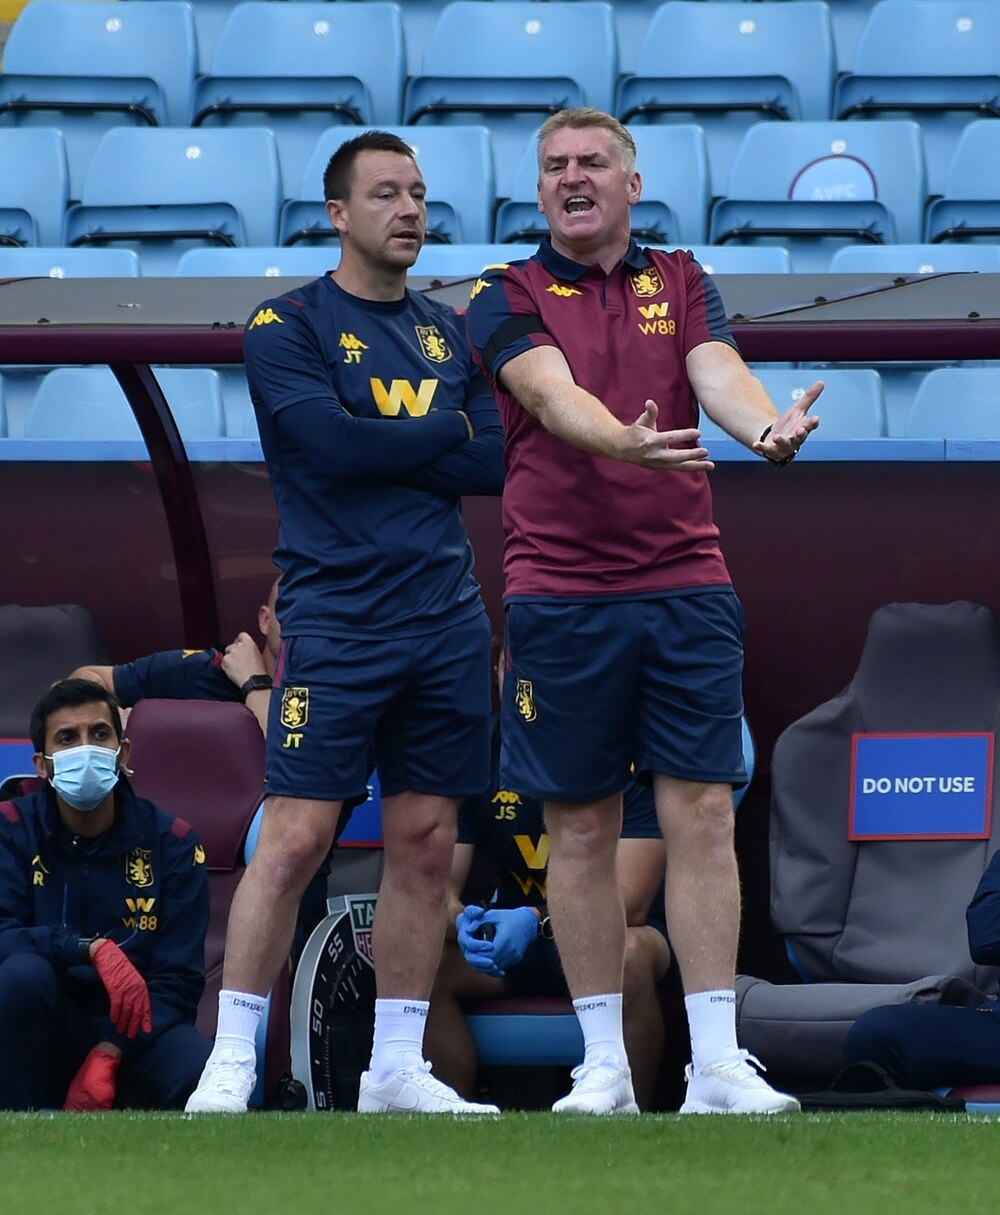 Smith upset with authorities blocking cryotherapy for Aston Villa players